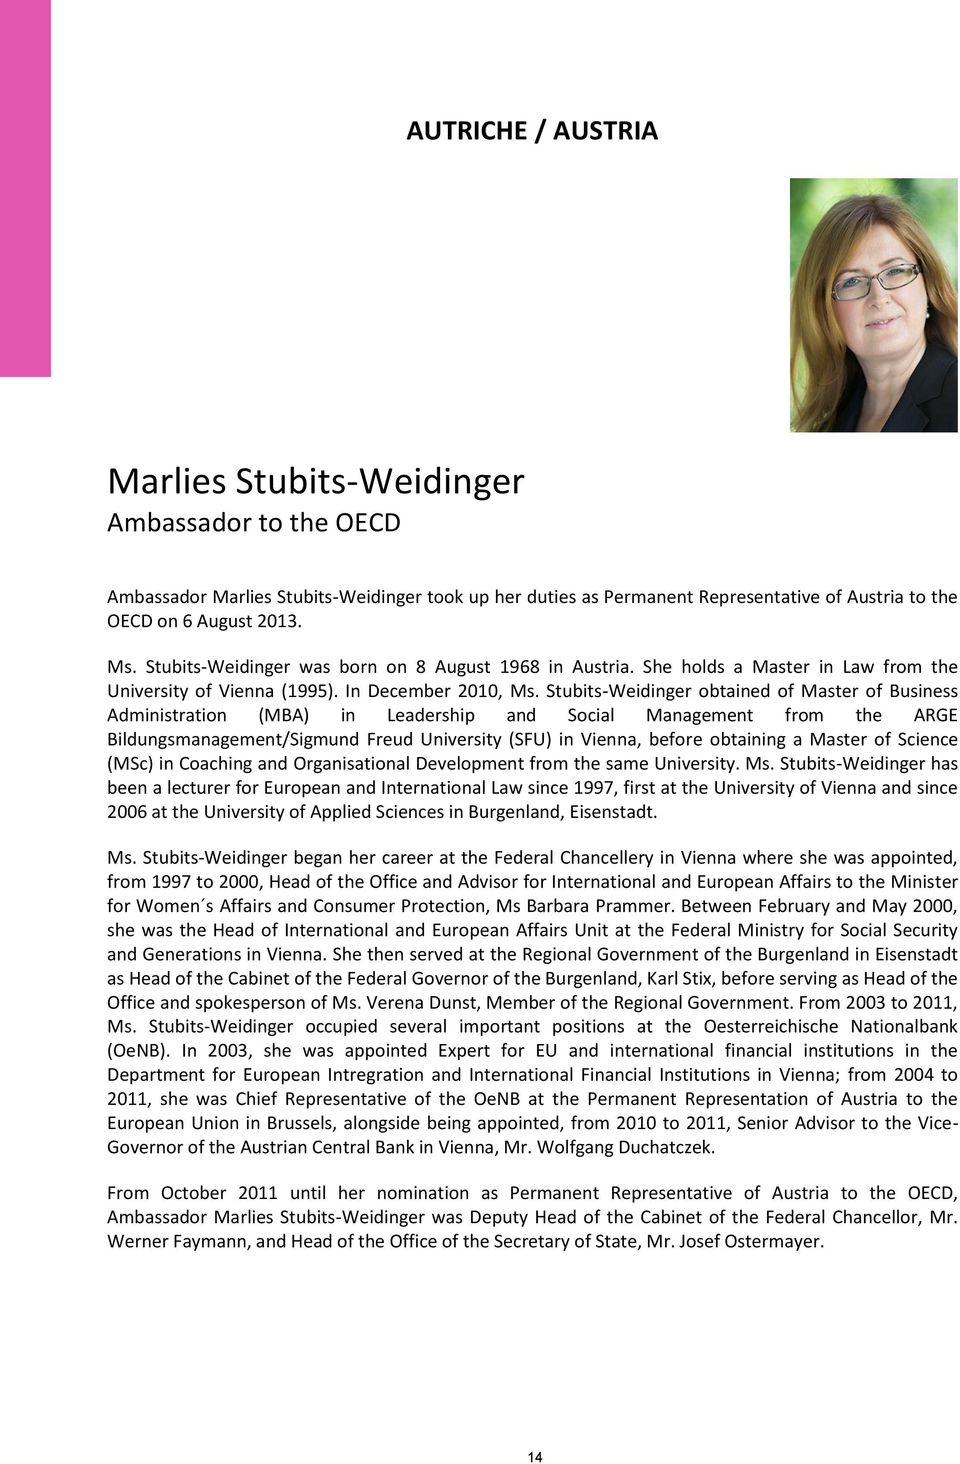 Stubits-Weidinger obtained of Master of Business Administration (MBA) in Leadership and Social Management from the ARGE Bildungsmanagement/Sigmund Freud University (SFU) in Vienna, before obtaining a